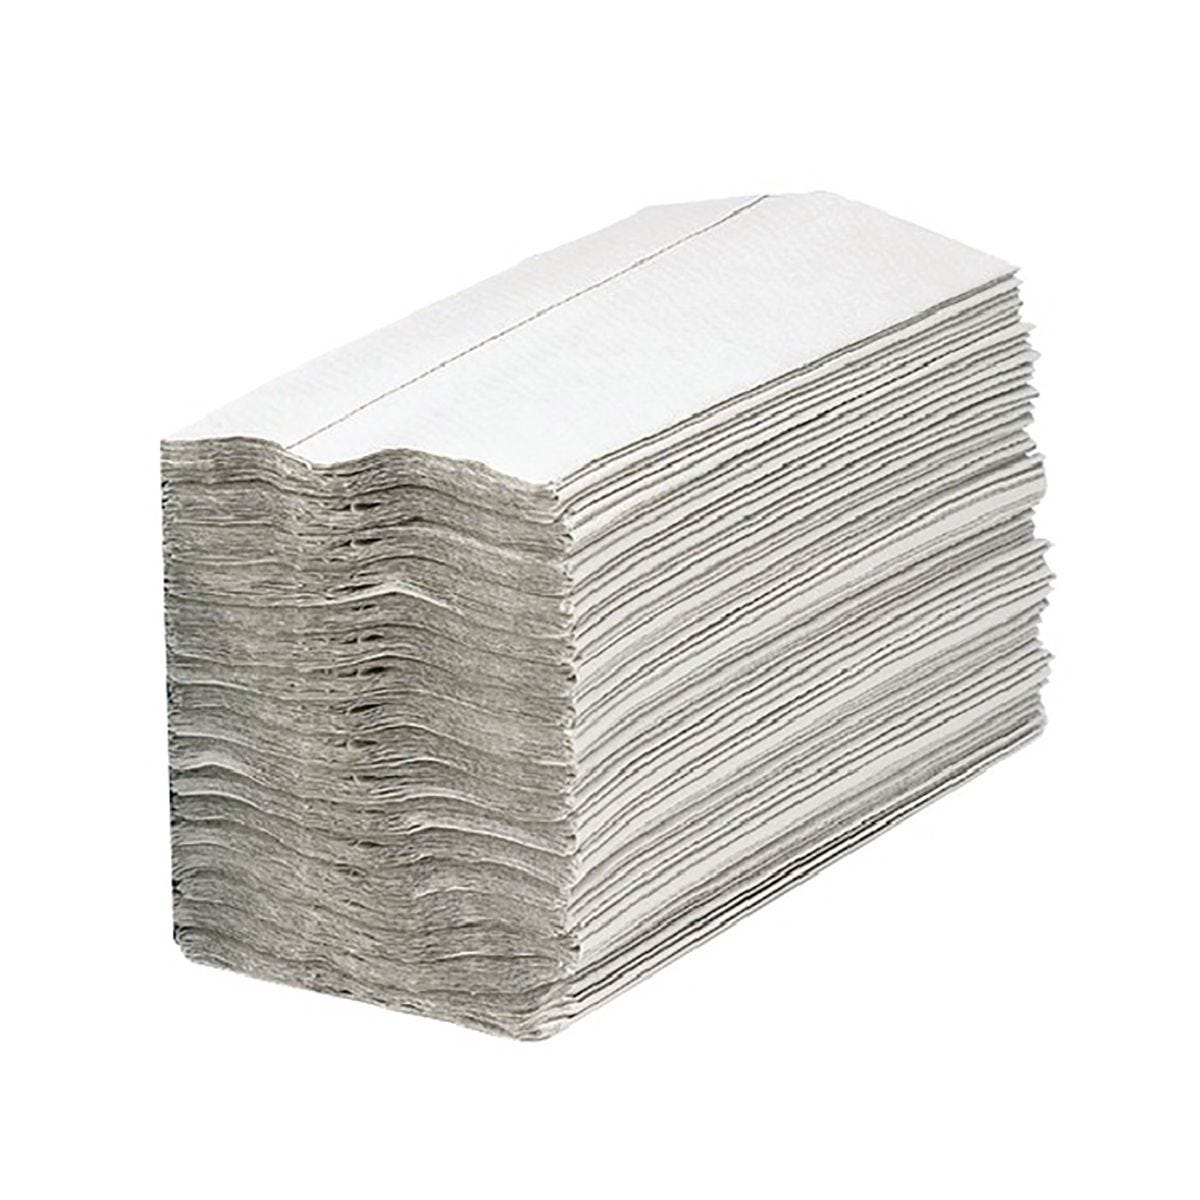 Image of 2Work White 1-Ply C-Fold Hand Towel Pack of 2955